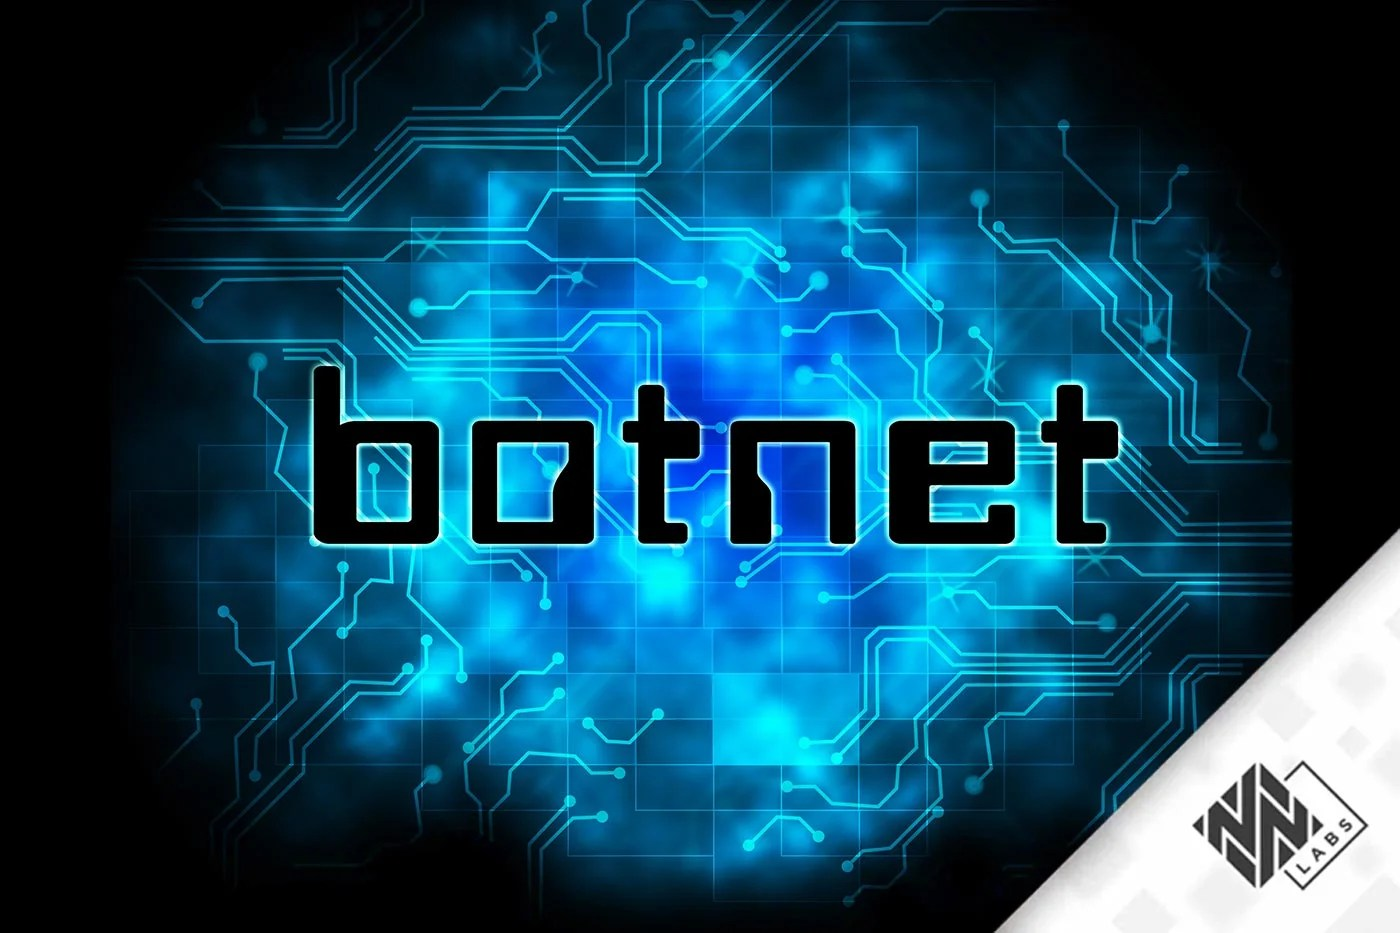 IoT-Botnet-Dark-Nexus-BLOG